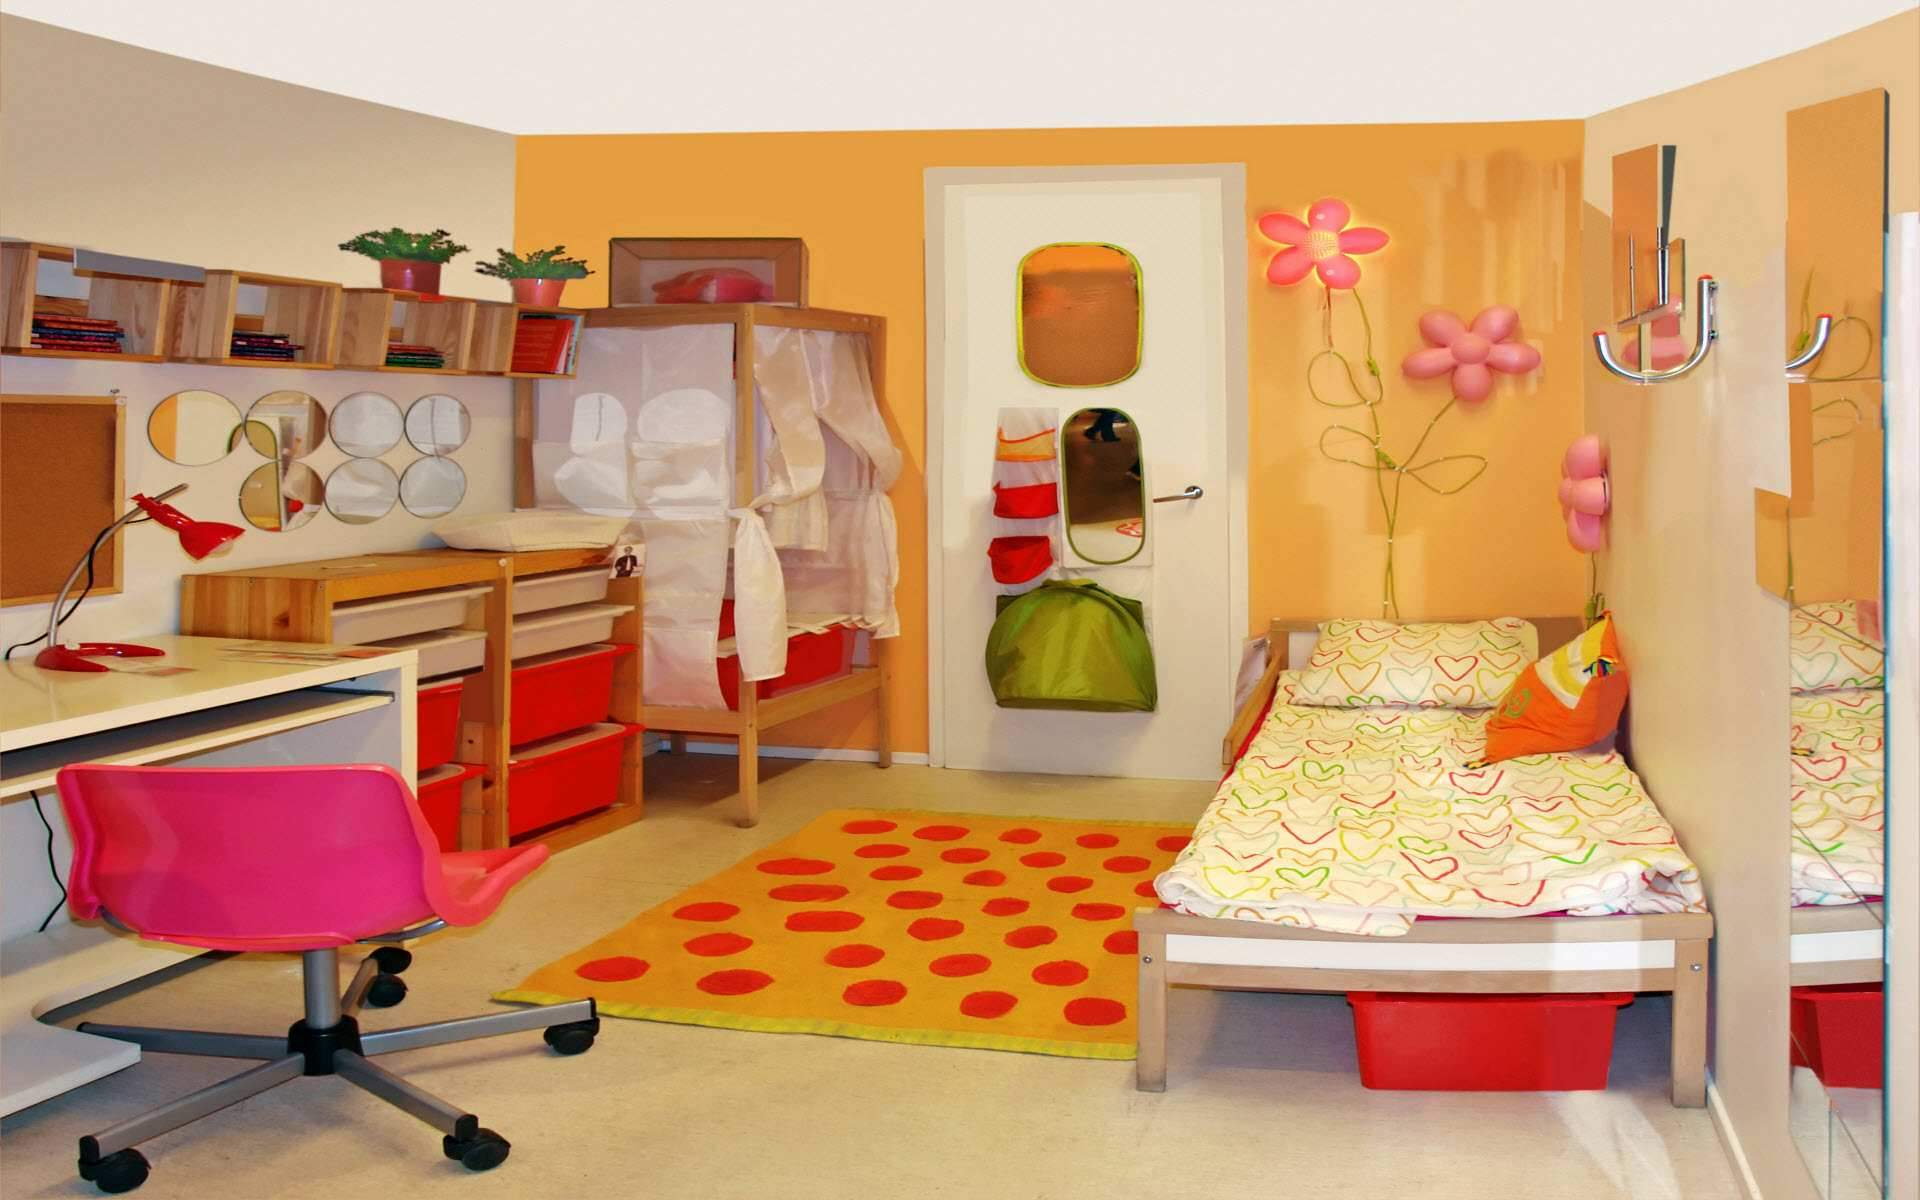 Top Kids Room Interior Design Ideas 1920 x 1200 · 167 kB · jpeg